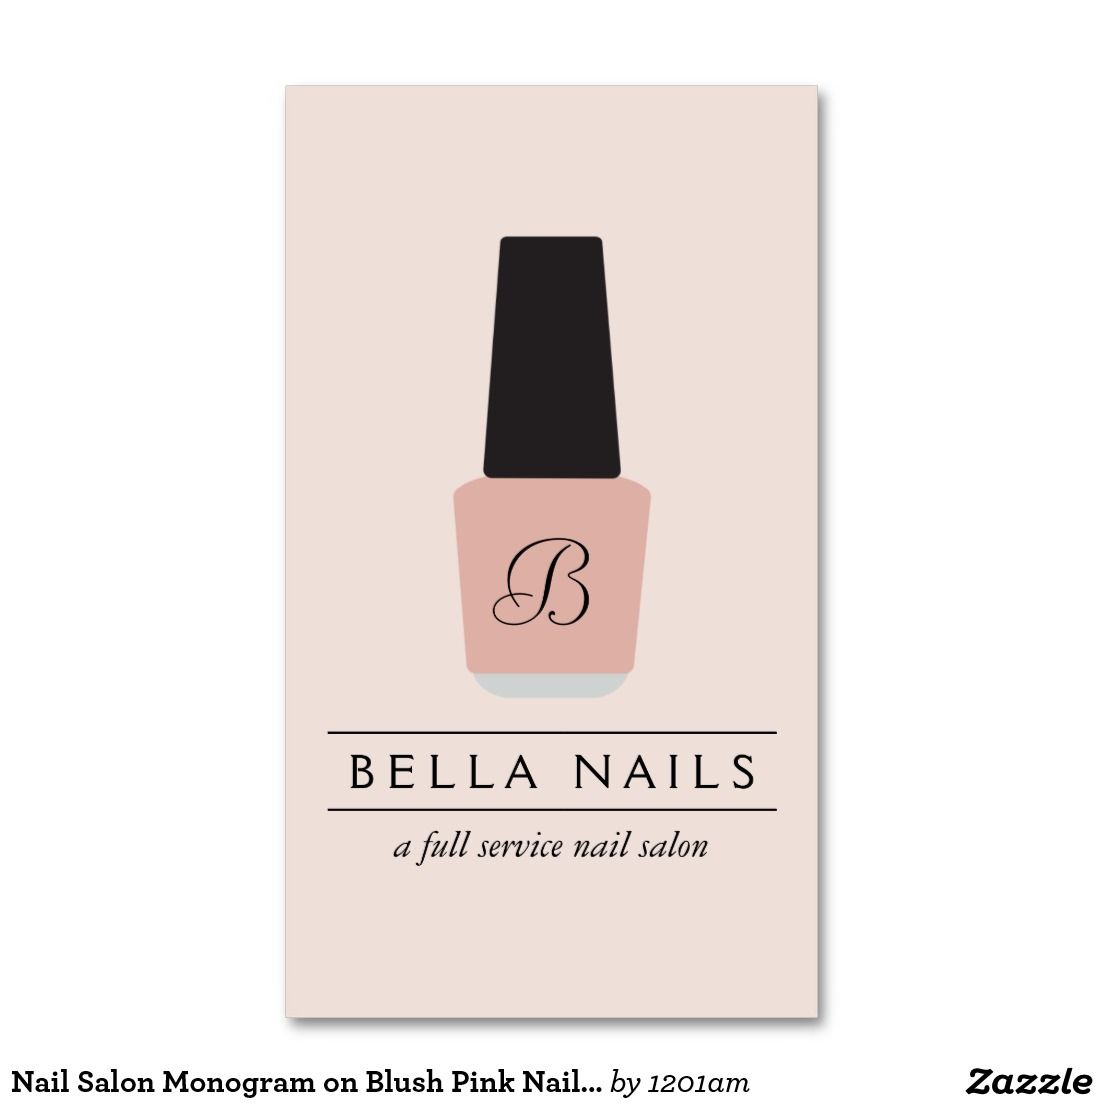 Customizable Nail Salon Business Card Features Monogram Logo with Your Initial - Stylish and Glamorous design ready for you to personalize!